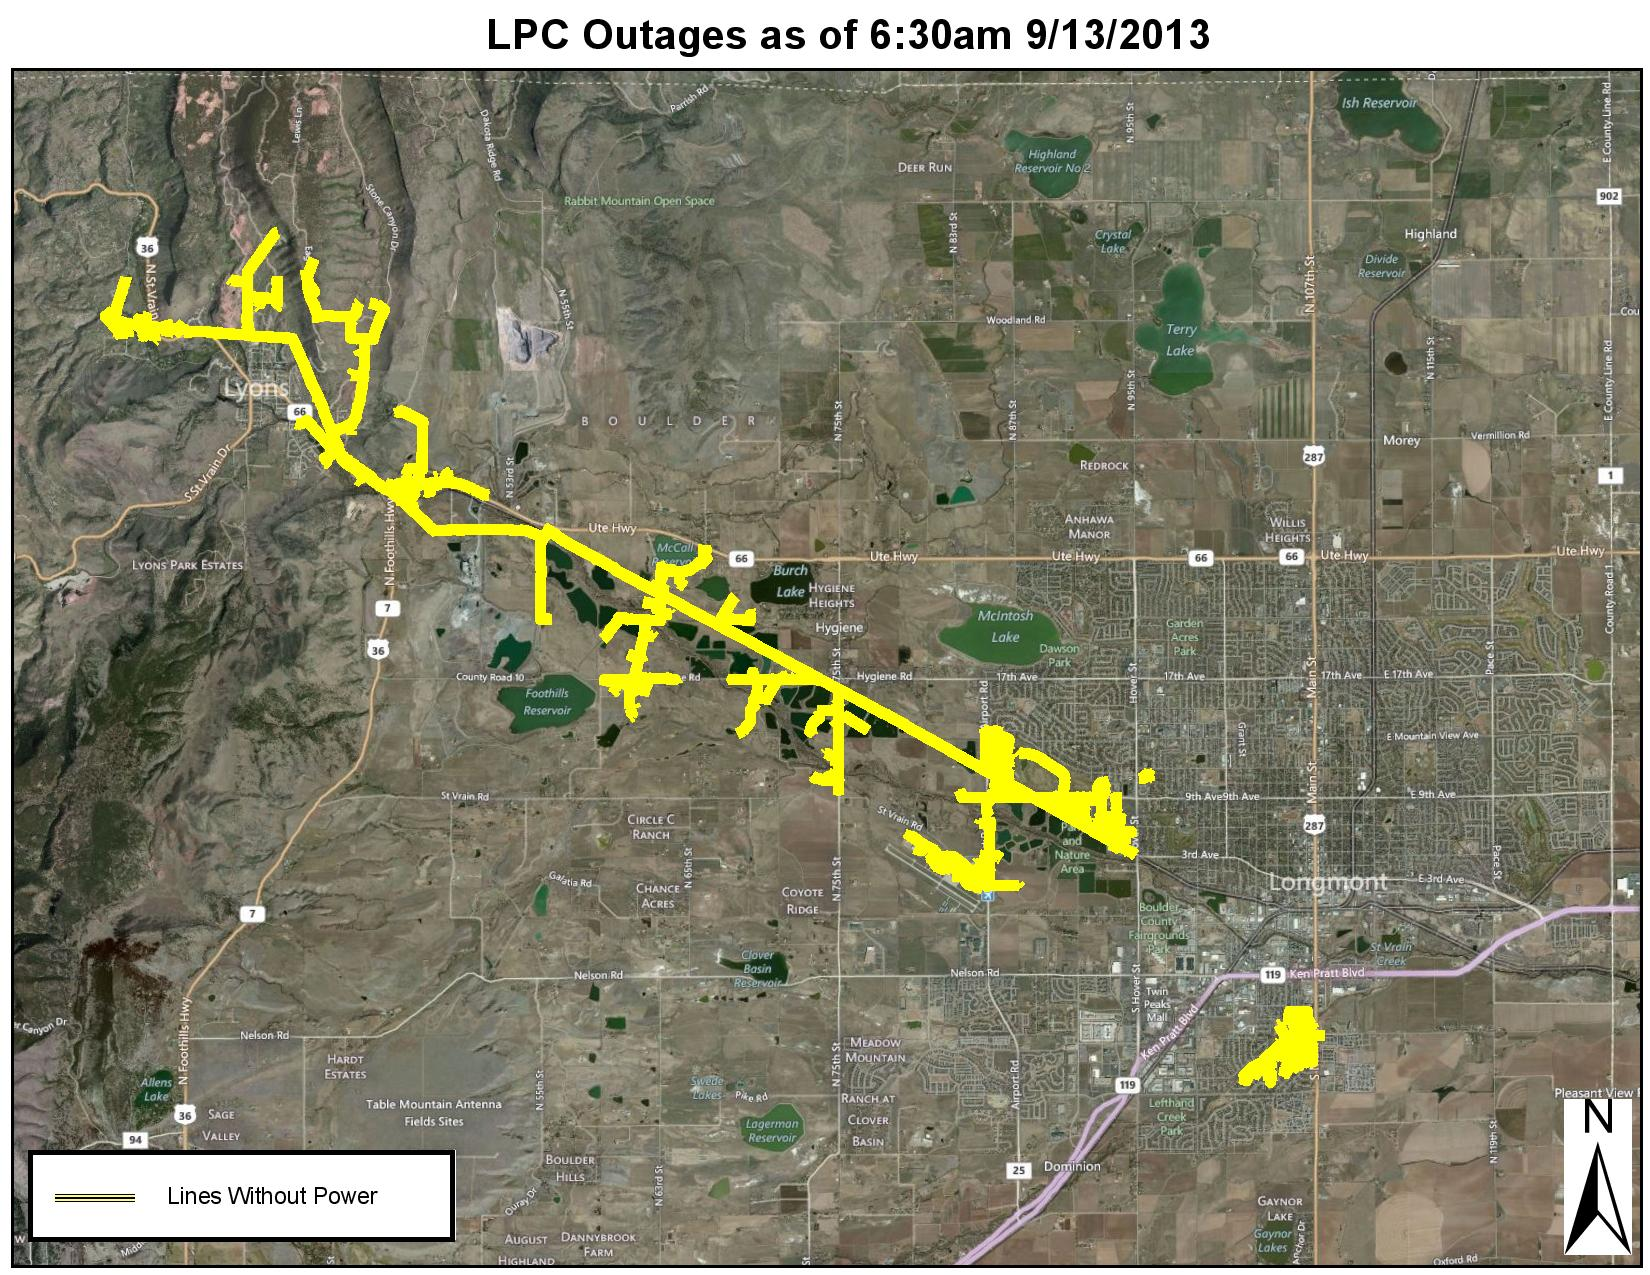 This map highlights the area with power outages as of Friday morning.